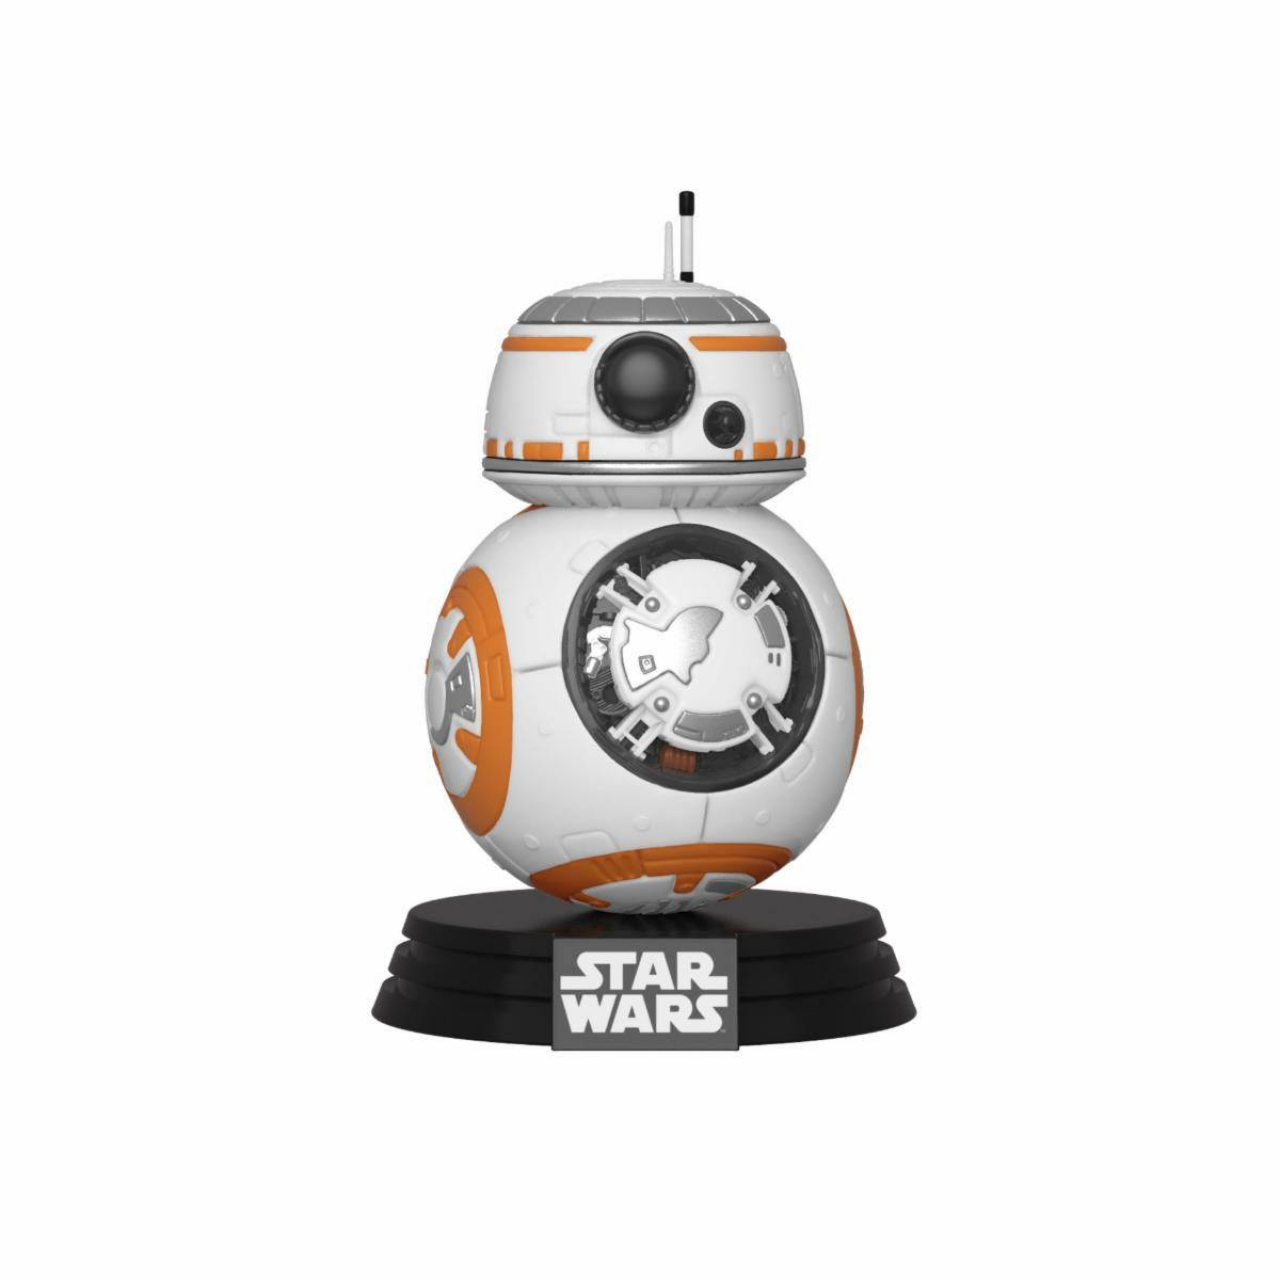 Star Wars Episode IX POP! Movies Vinyl Figure BB-8 9 cm